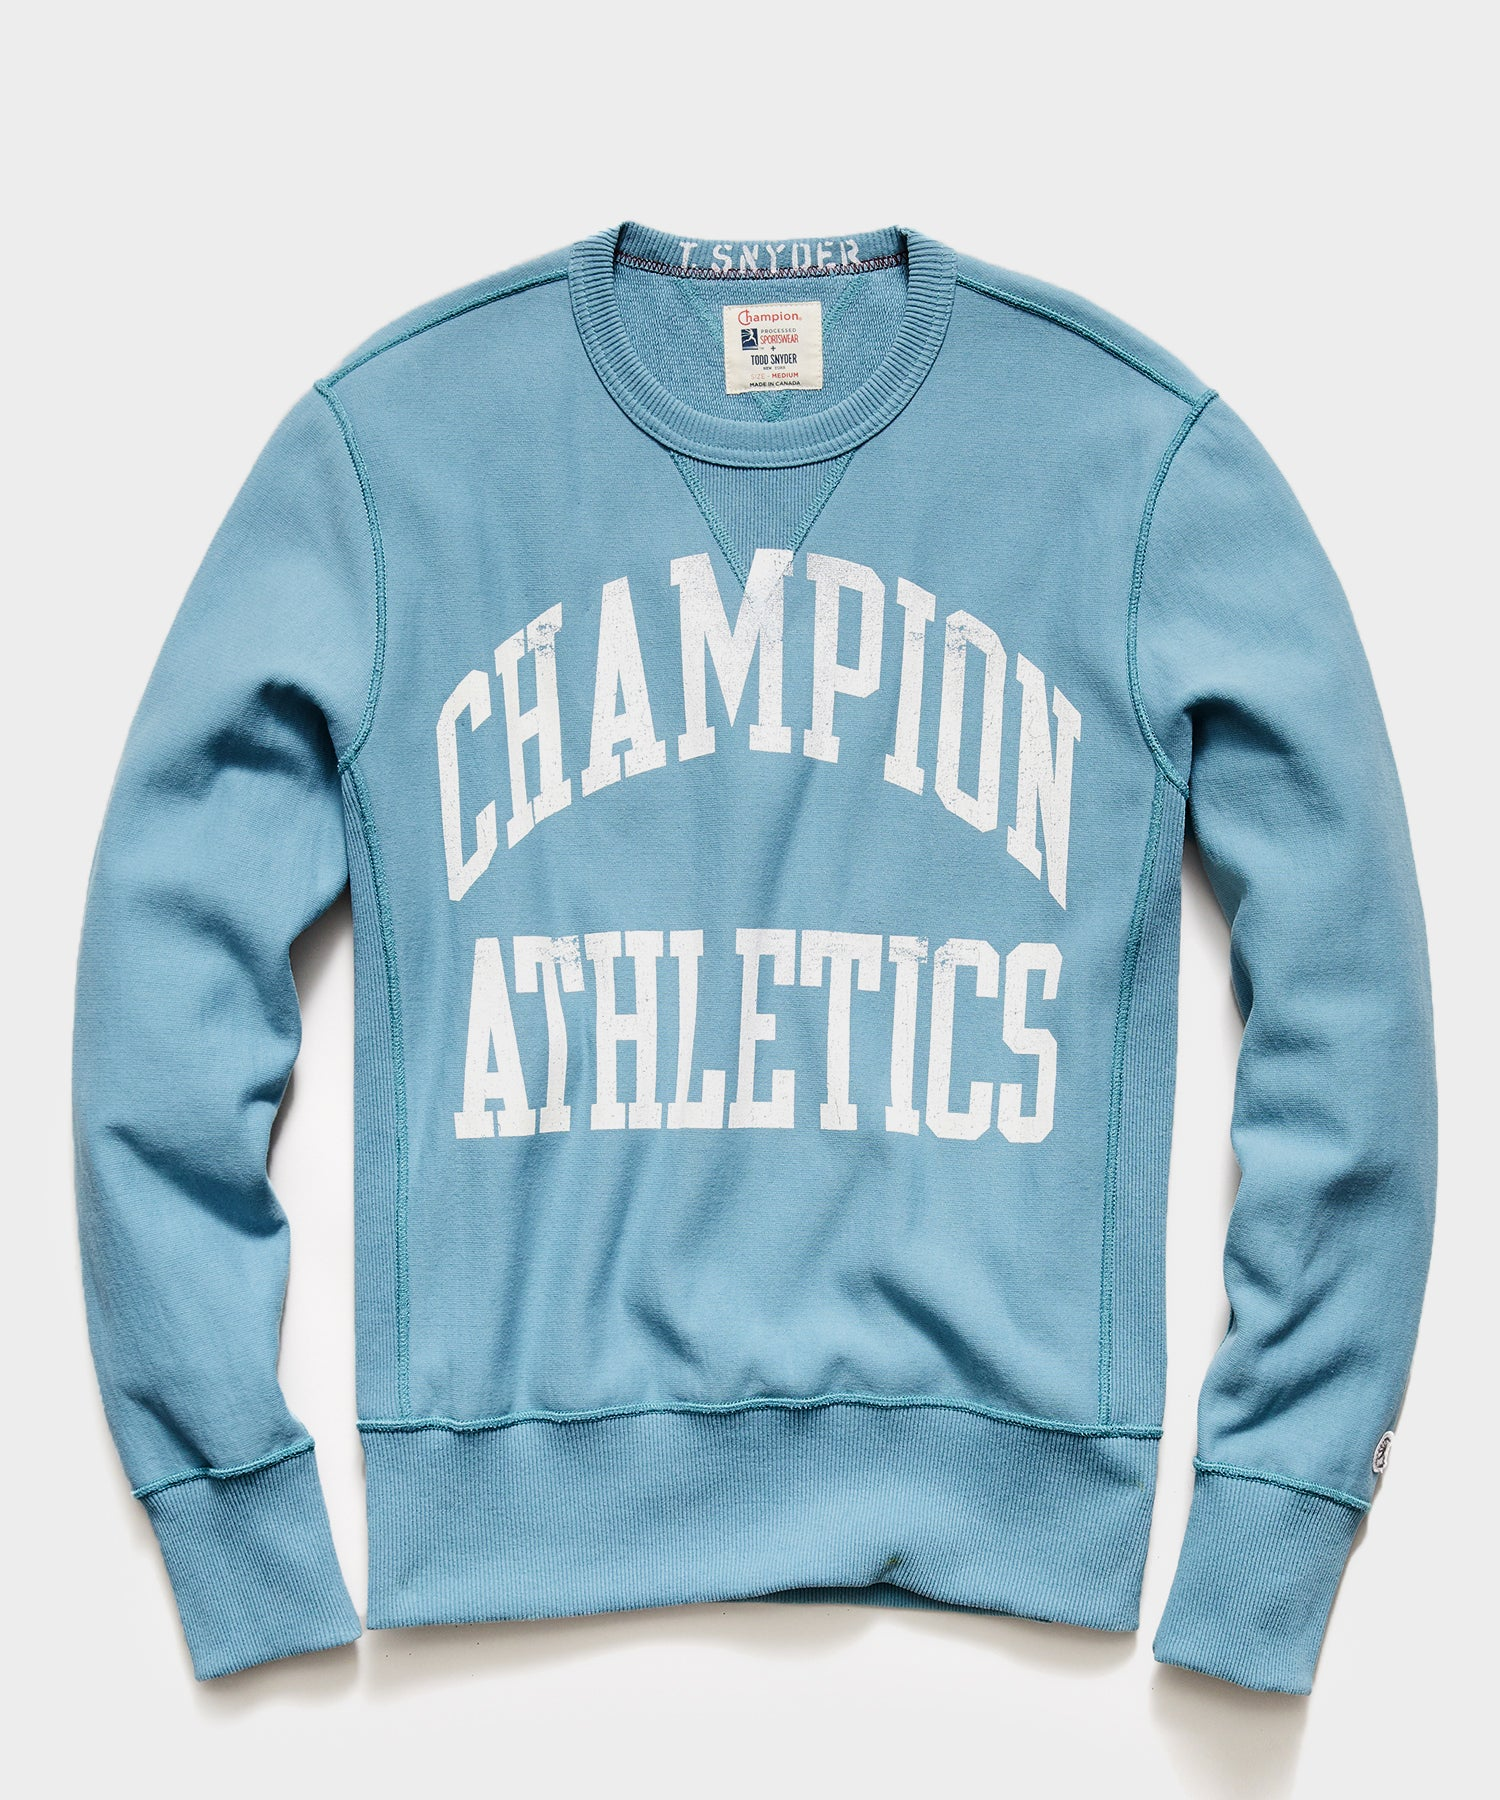 Champion Athletics Sweatshirt in Bluestone